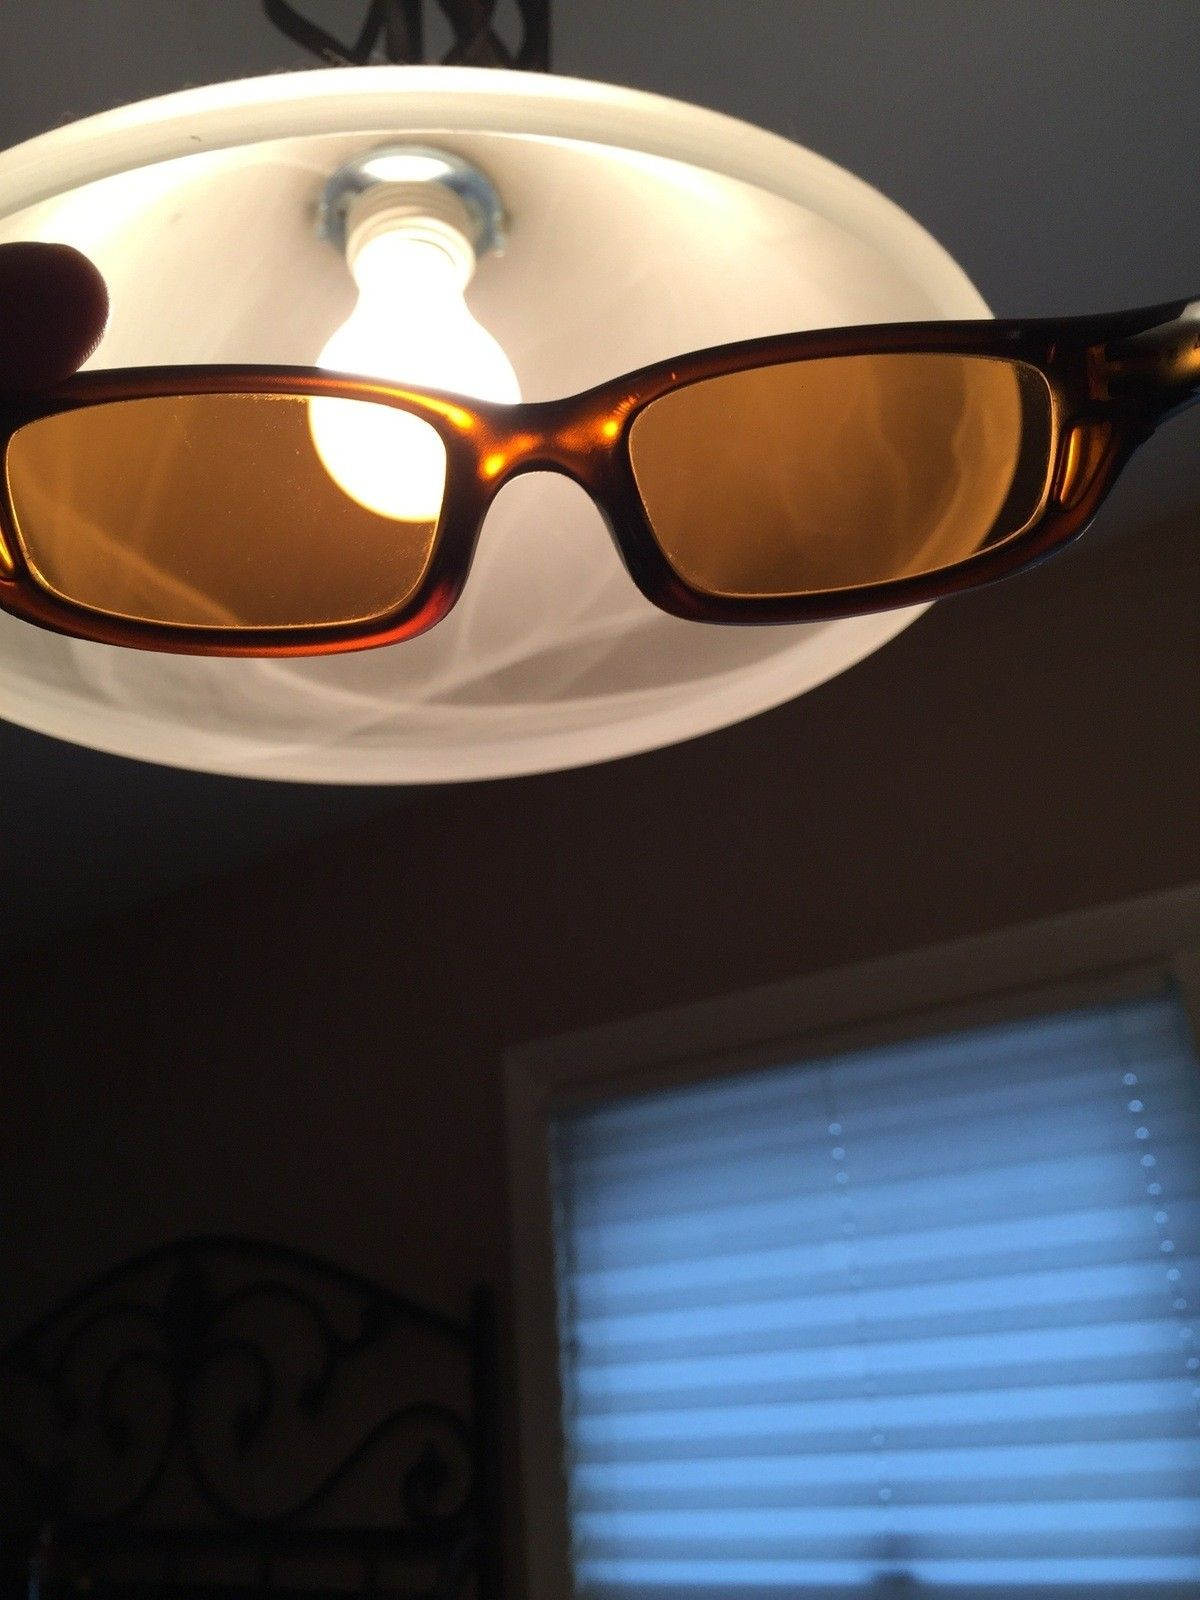 """Several items: Holbrooks, Frogskins, """"project Scar"""", Four, Mag Four S Plasma, X-Metal Stand - IMG_7041.jpg"""